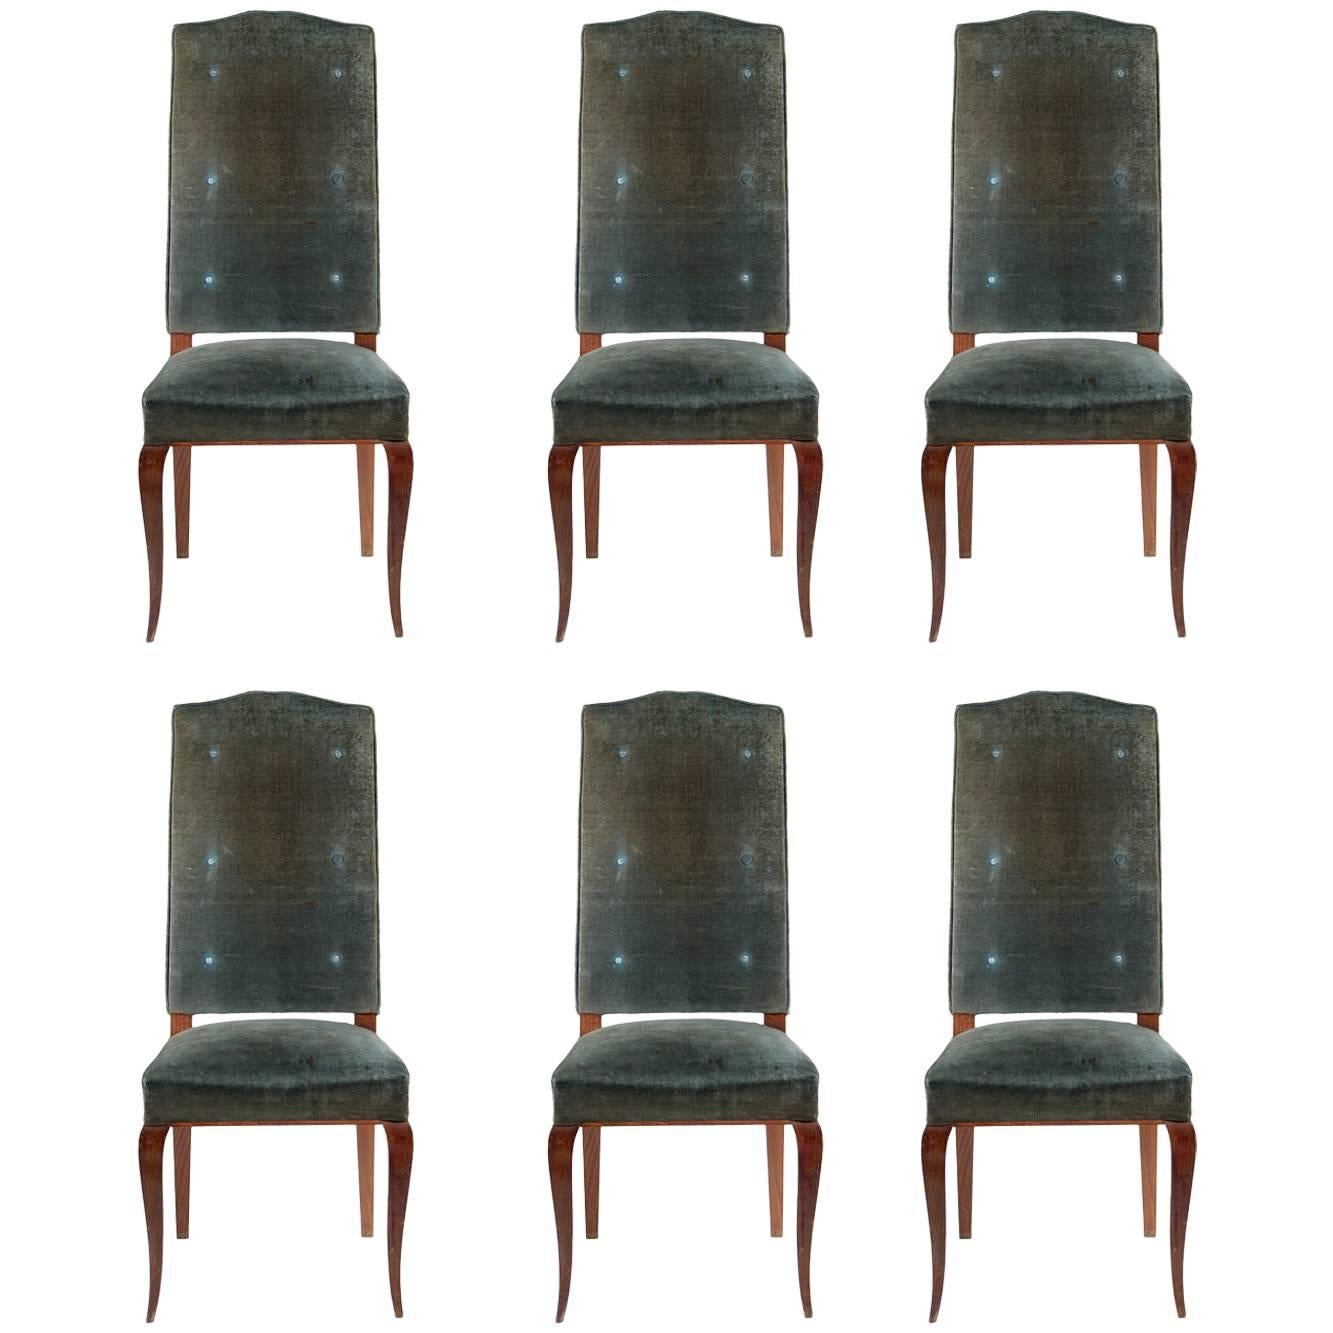 Attributed to Jean-Charles Moreux Set of Six Dining Chairs